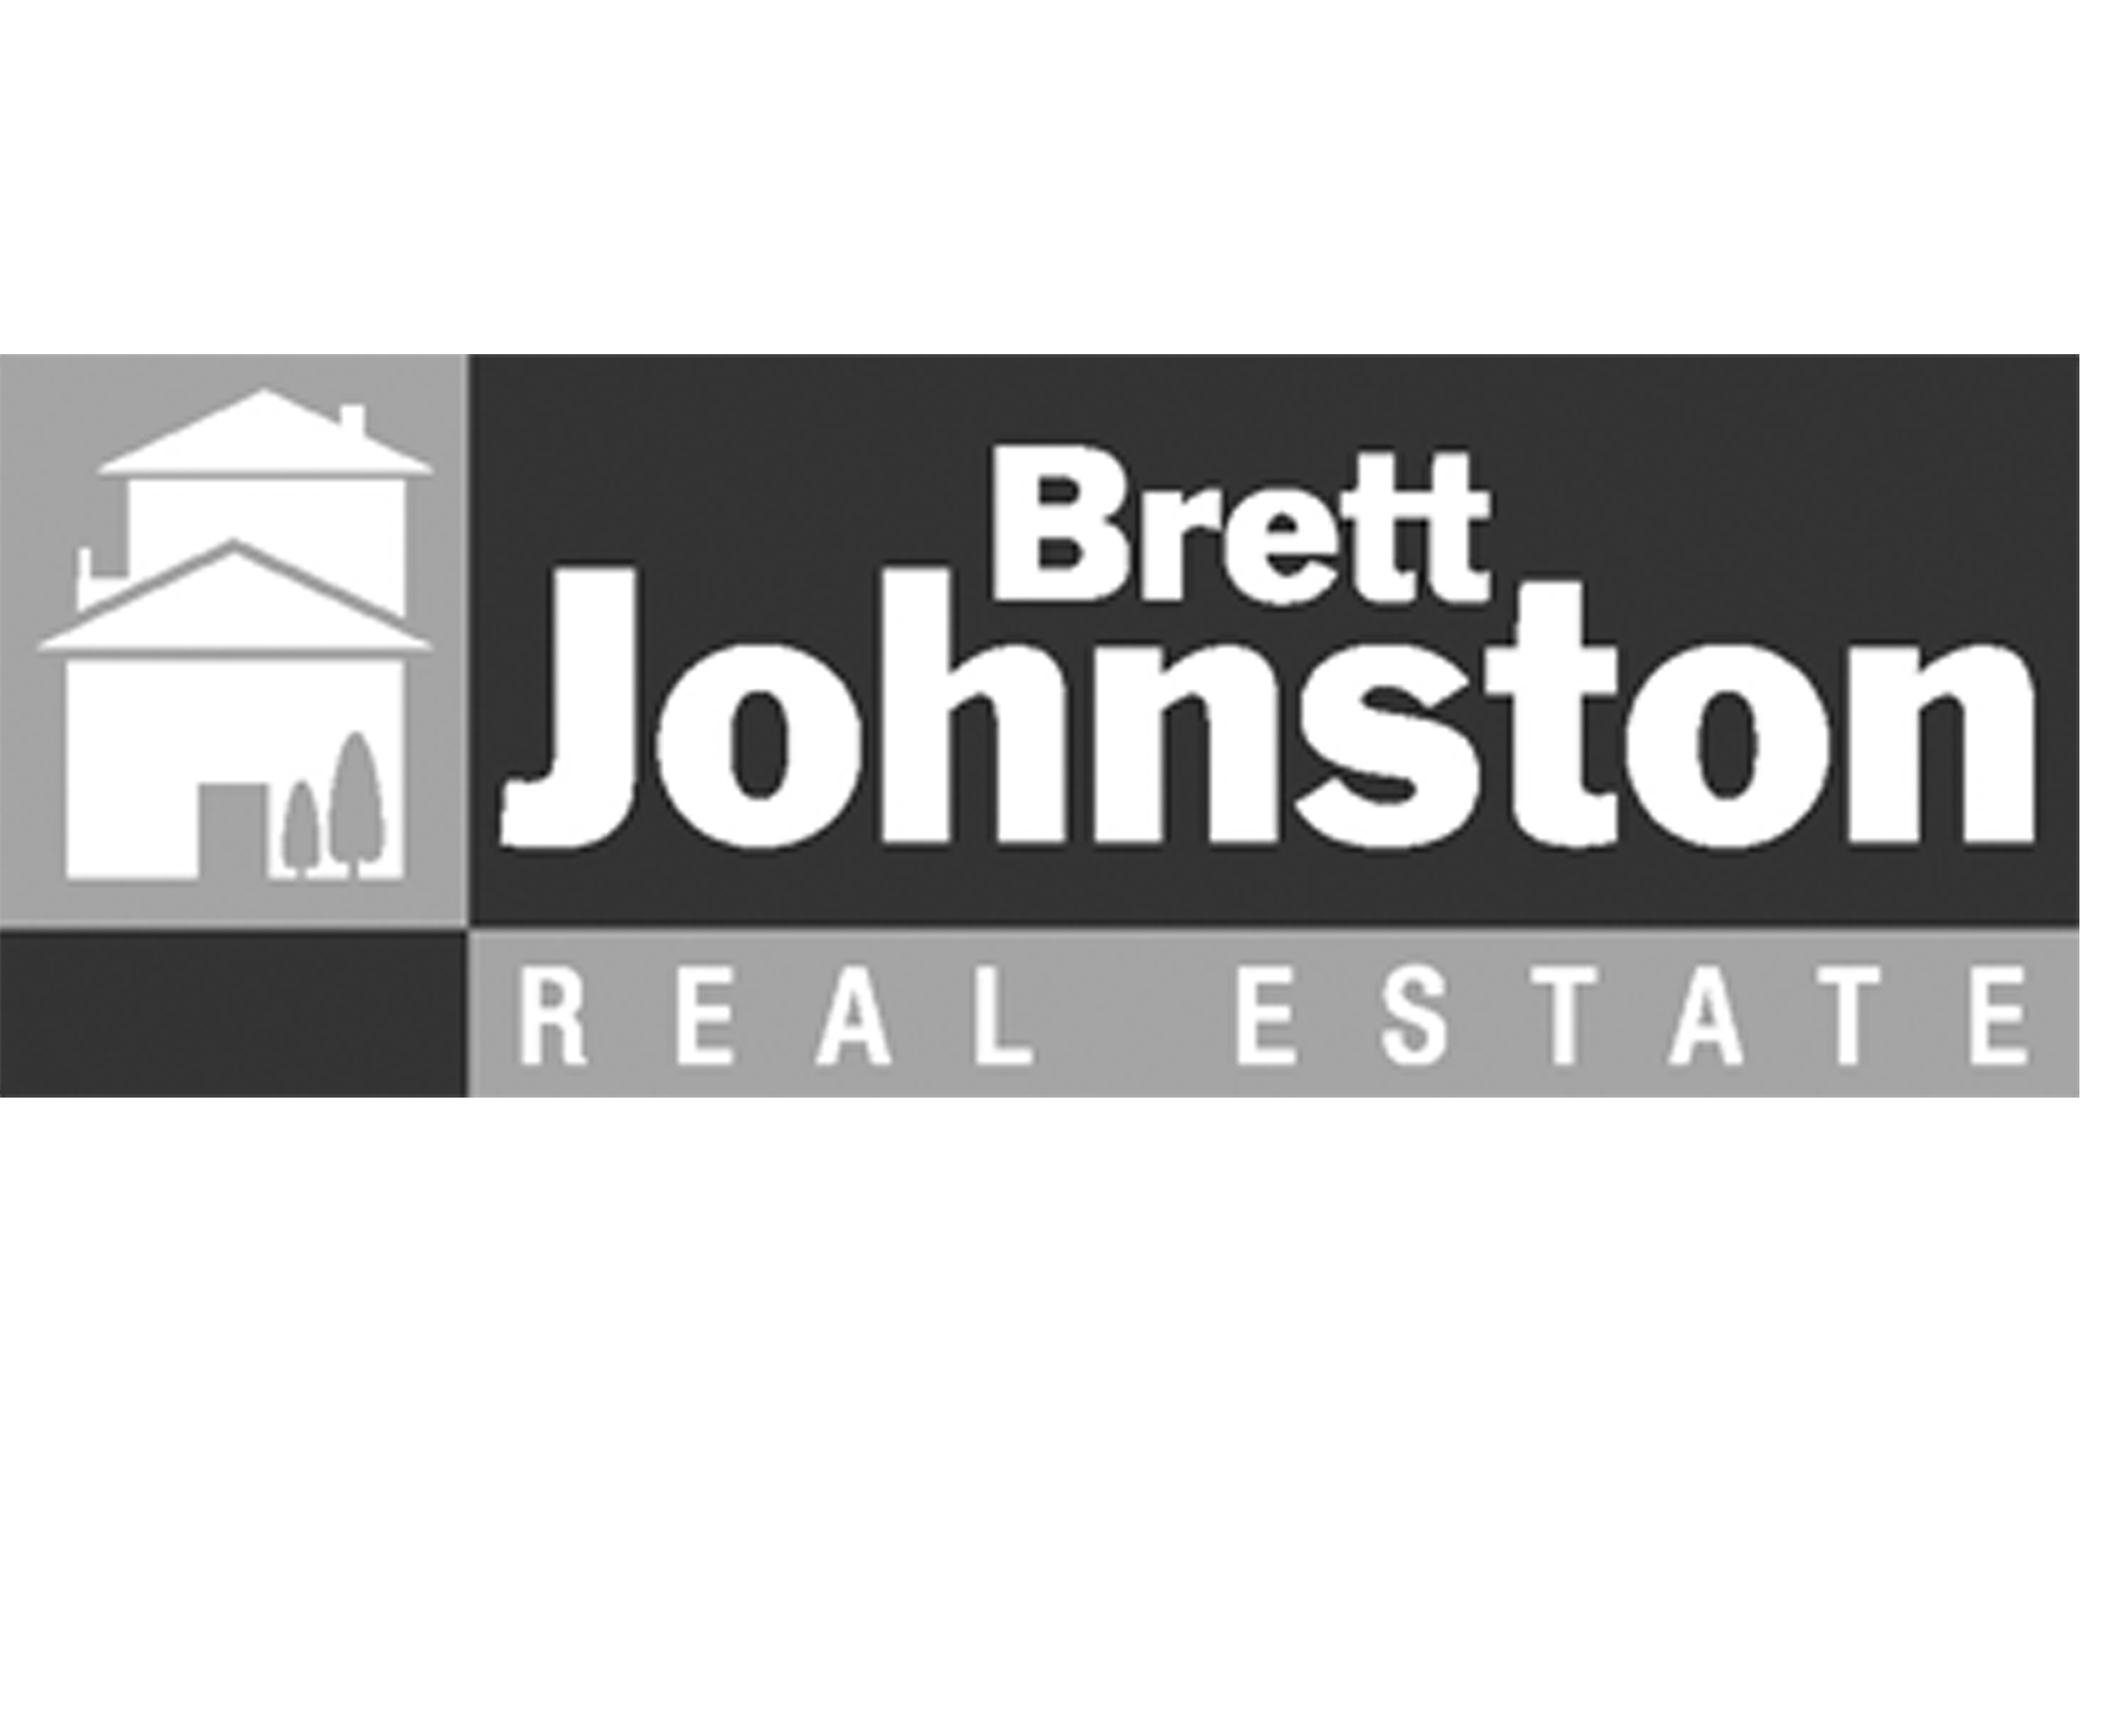 Brett Johnston Real Estate